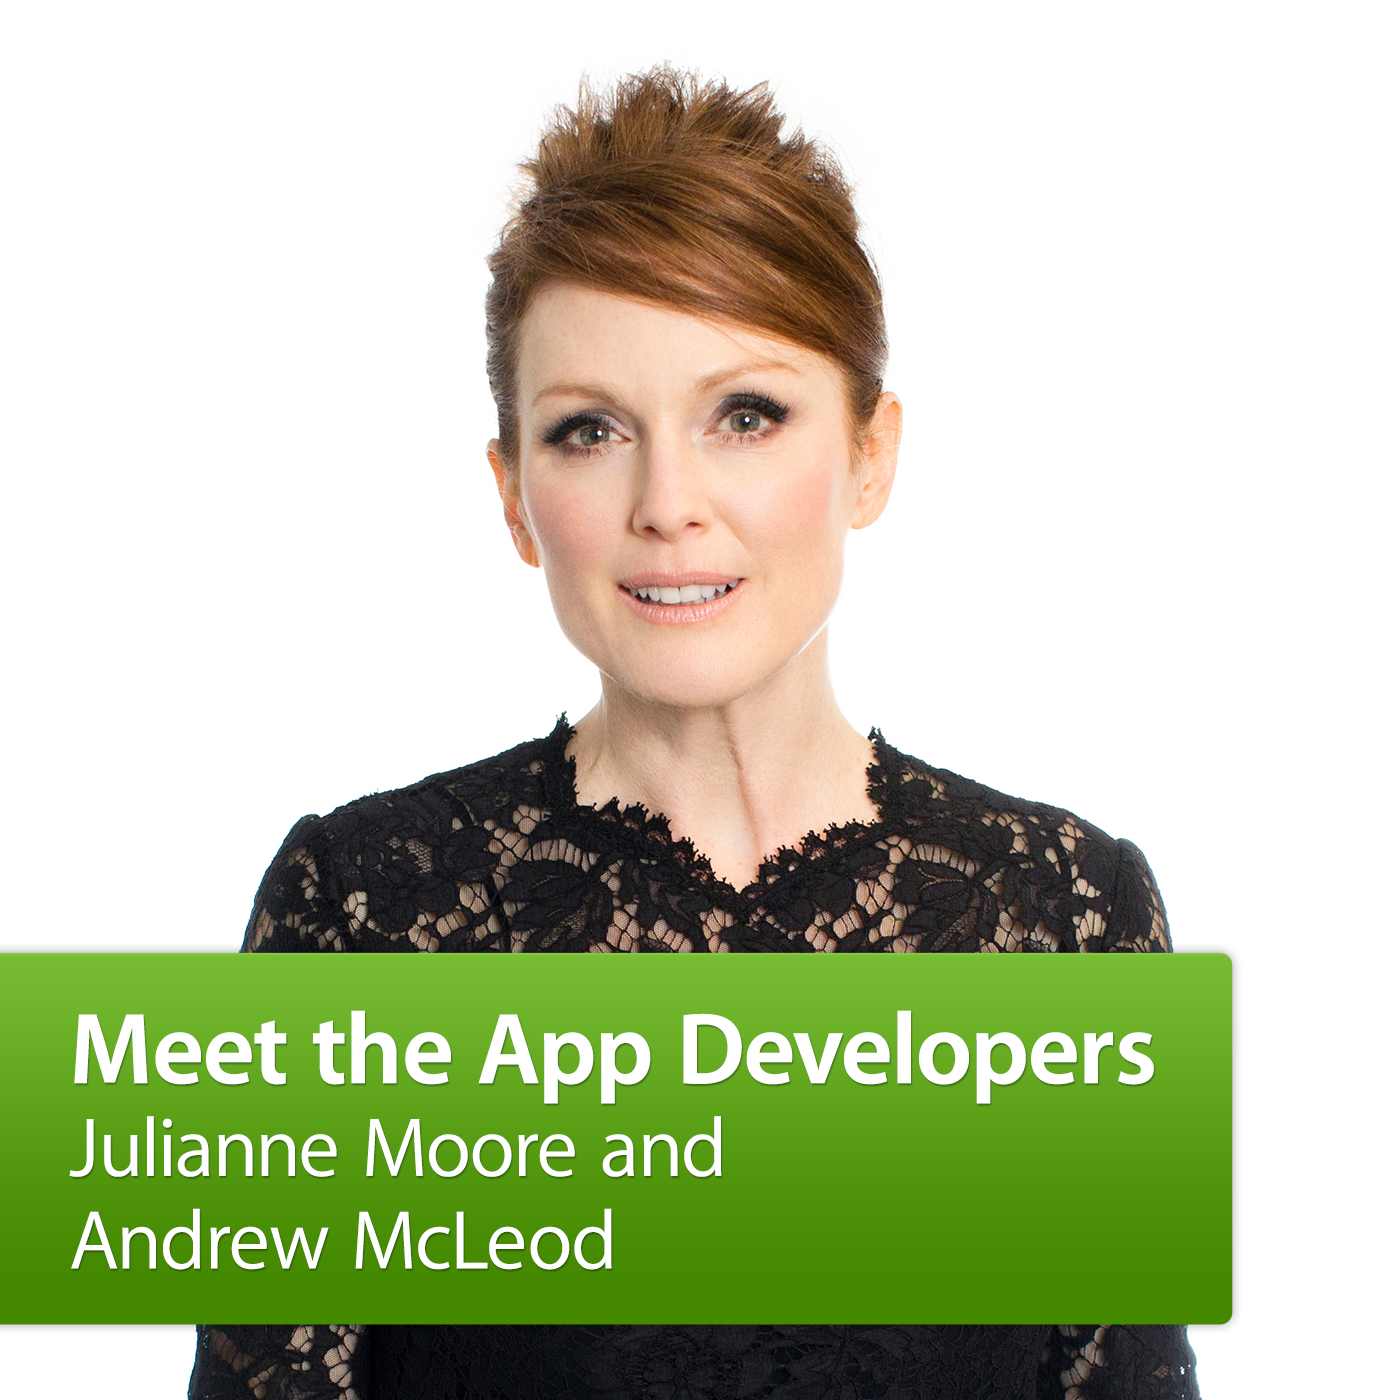 Julianne Moore and Andrew McLeod: Meet the App Developers